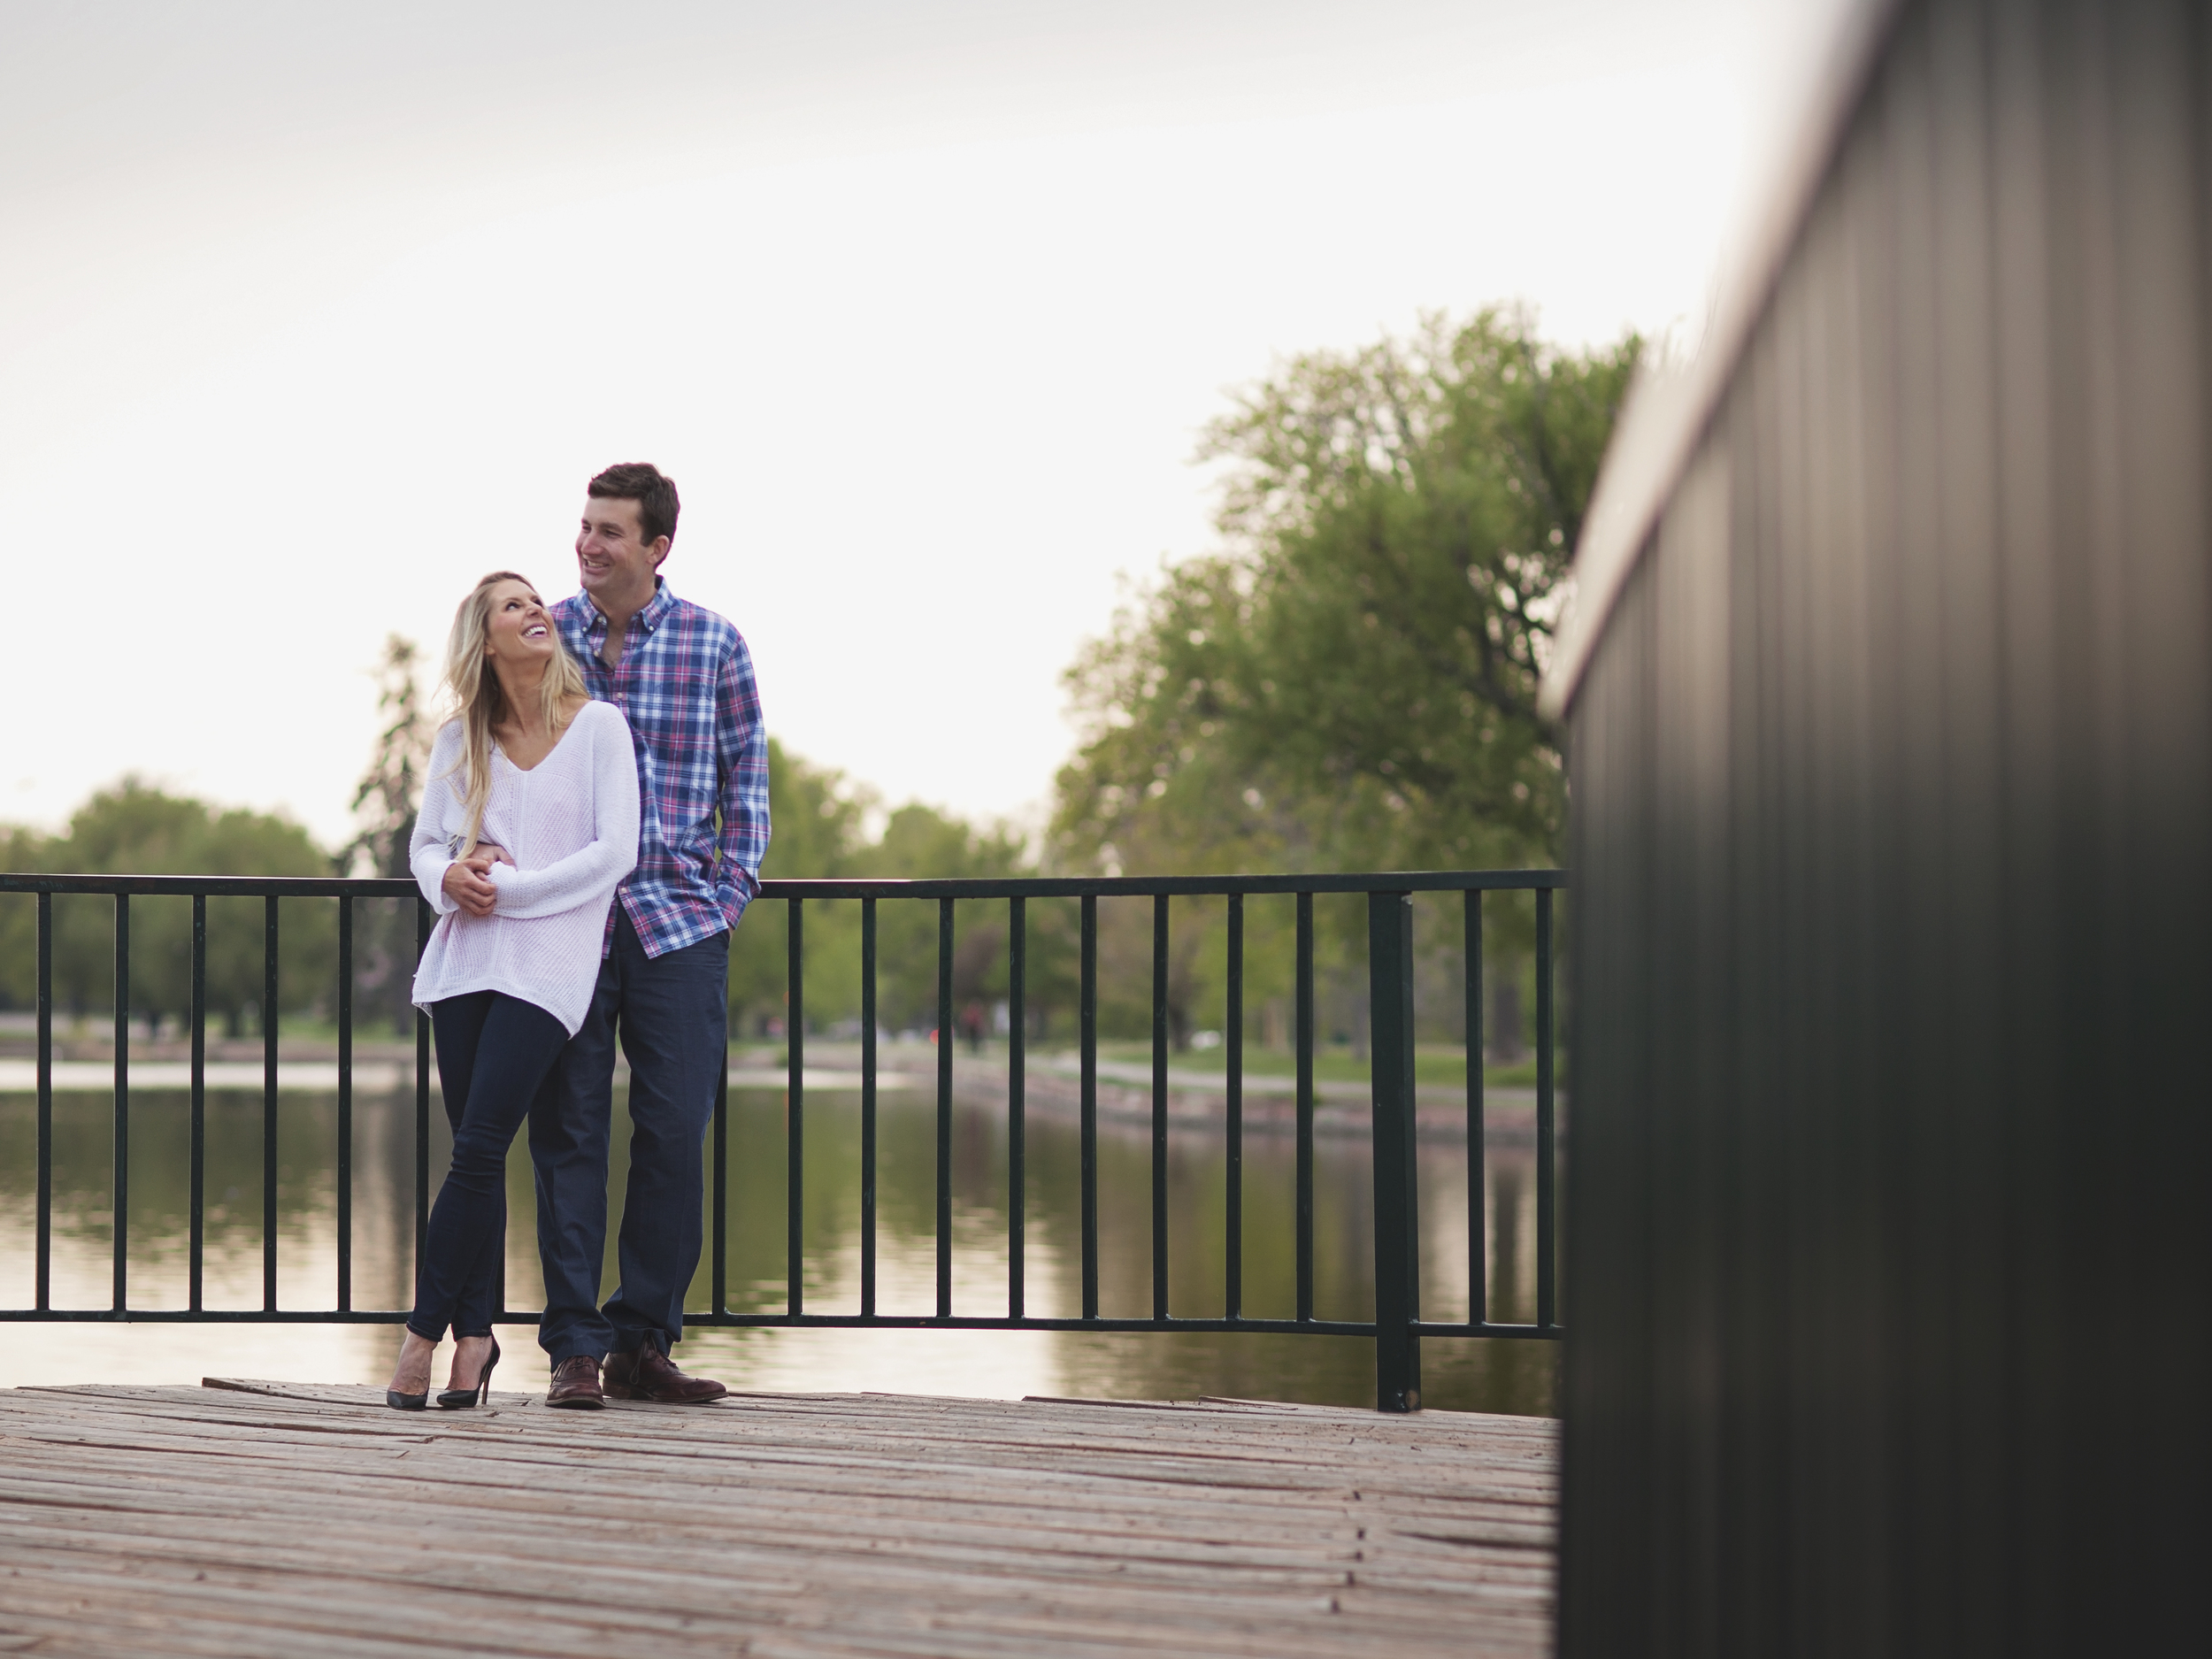 Couple standing on deck at City Park in Denver, Colorado